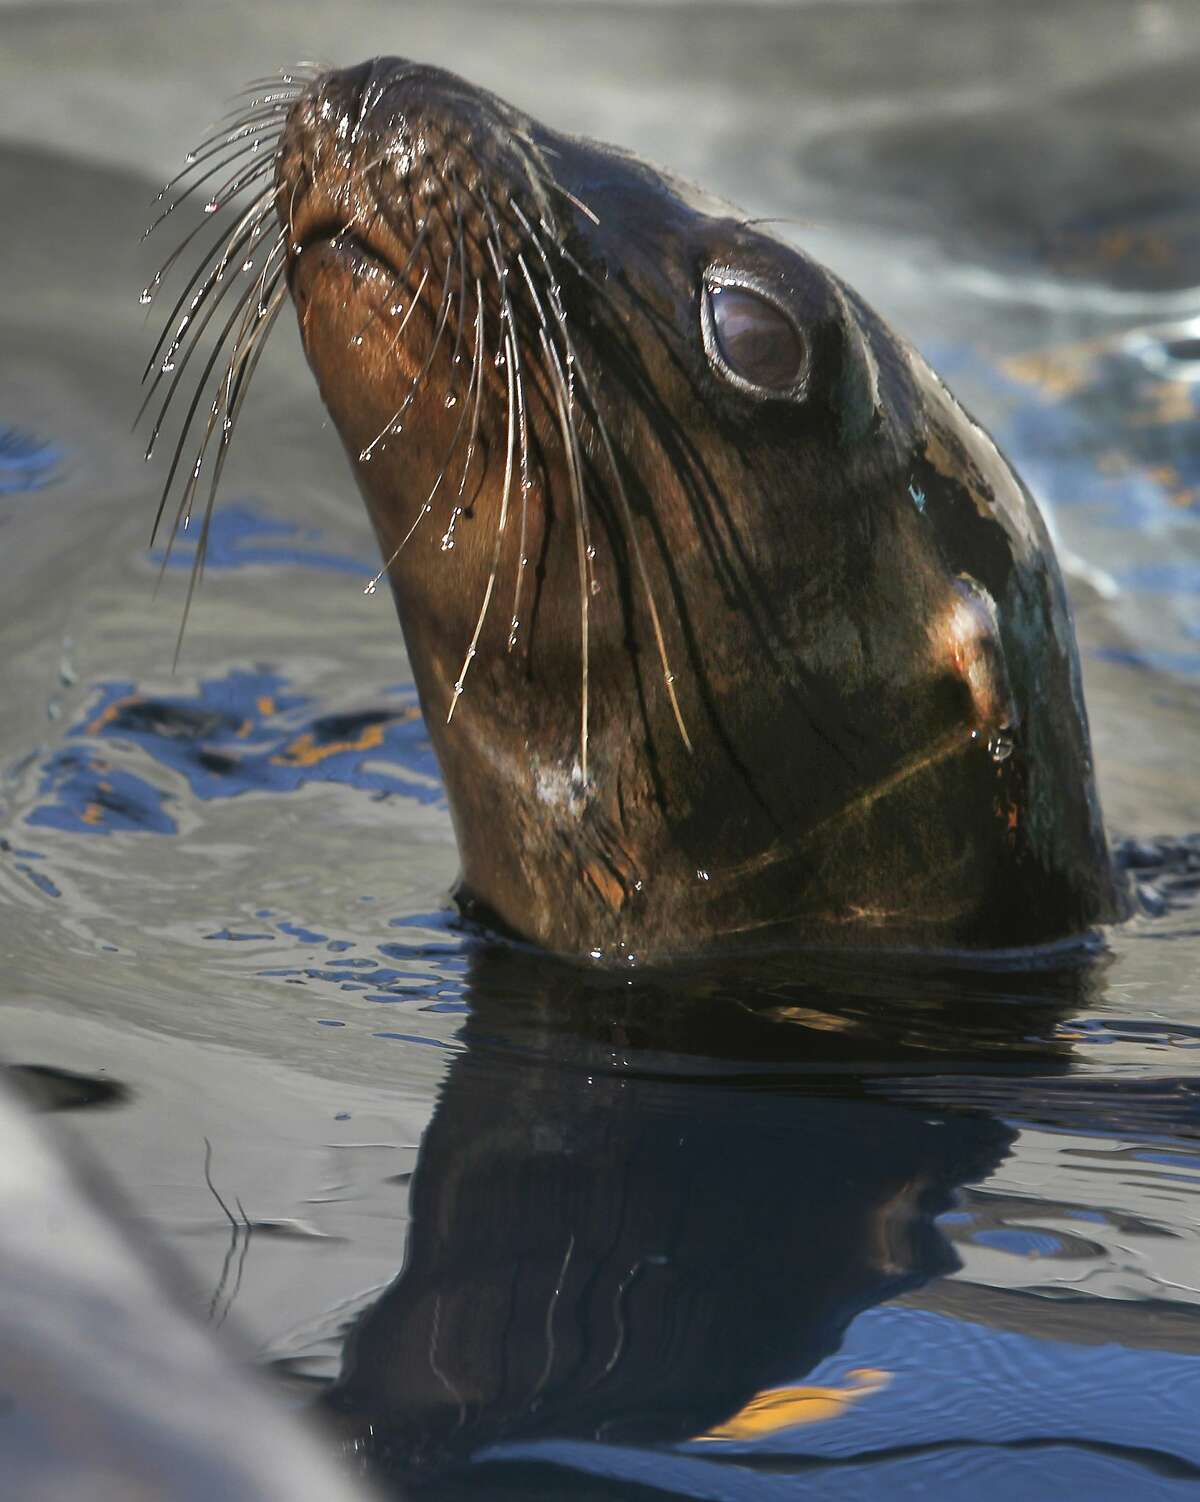 Danzig swims in his pen while rehabilitating at the Marine Mammal Center in Sausalito, Calif. on Friday, Nov. 6, 2015. Veterinarians suspect the male yearling sea lion may have contracted domoic acid from his mother in utero. Warming ocean temperatures are taking a toll on the marine ecosystem.